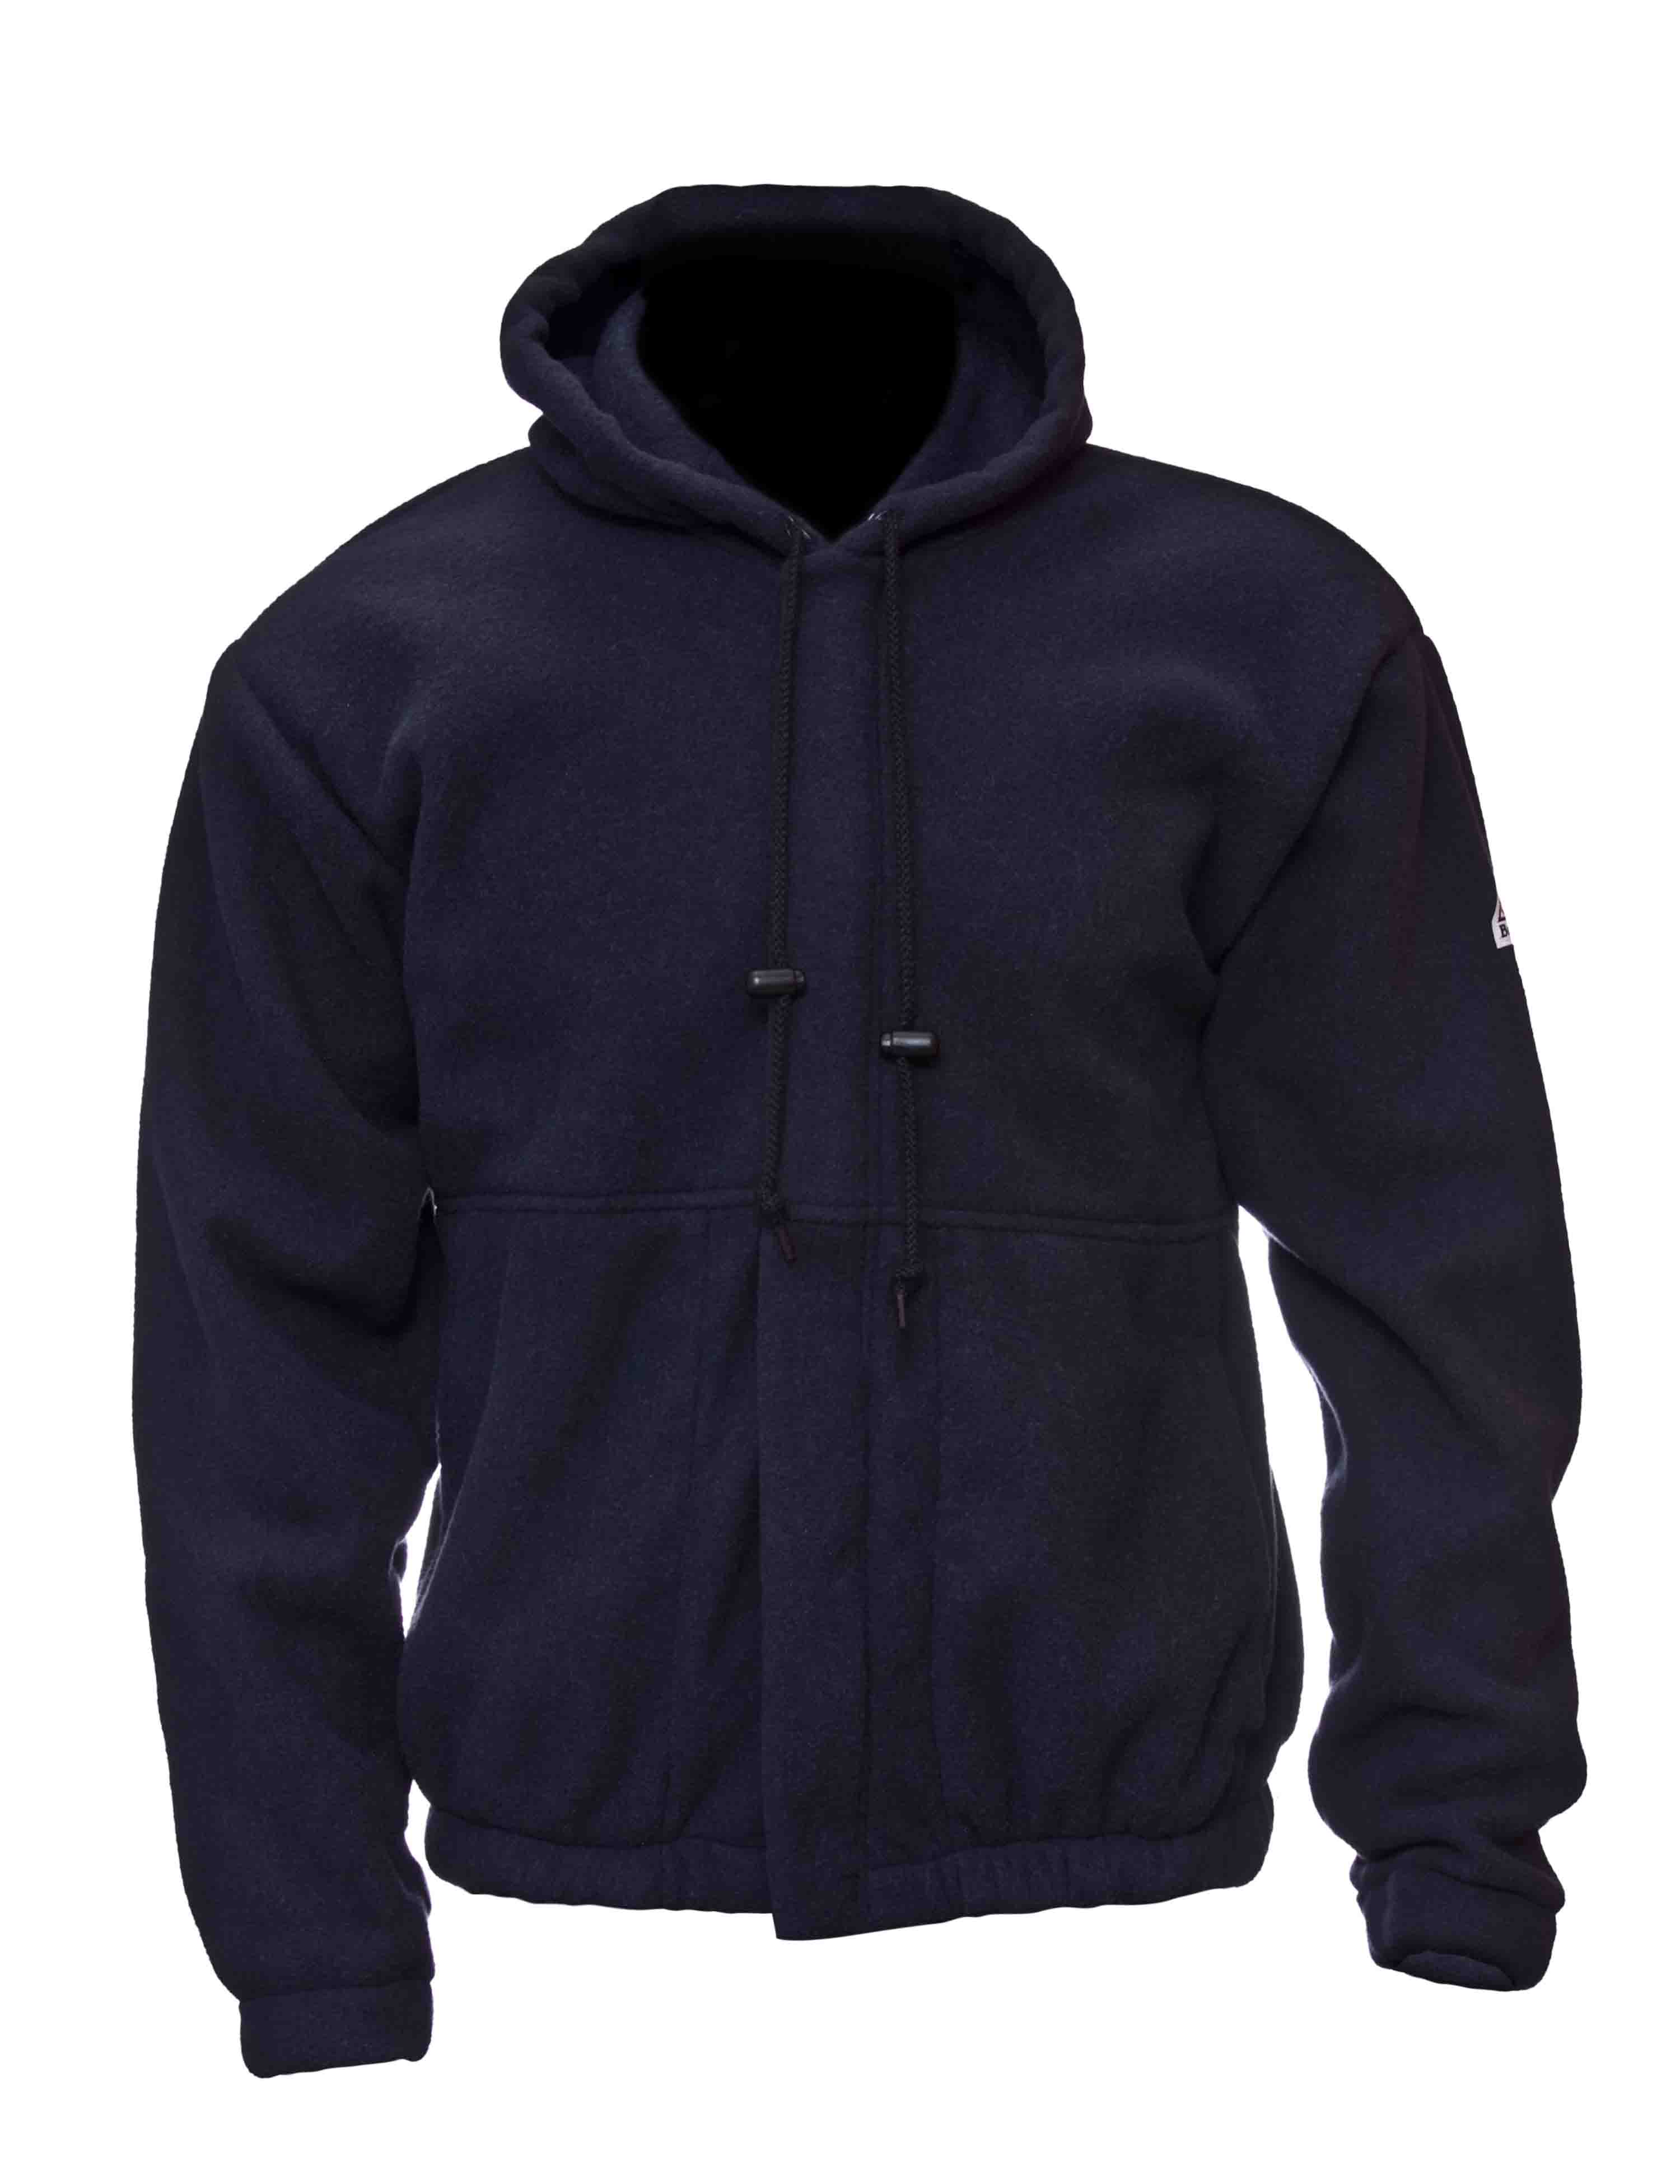 Bulwark Zip Front Hooded Fleece Sweatshirt SMH6 - These products are standouts from the most revolutionary flame resistant (FR) layering system on the market - a collaboration between Polartec, the leading manufacturer of performance fabrics, and Bulwark, the world's largest manufacturer of FR apparel. Bulwark's new line of Polartecr FR technical workwear garments focus on superior comfort, worker image, moisture management, and of course - flame resistance. Polartec's line of Polartecr FR fabrics are designed to work together, creating a layering system that has less bulk, better mobility, greater comfort, and more breathability. The Zip Front Hooded Fleece Sweatshirt SMH6, made of a different version of Polartecr Thermal FRr, provides a unique combination of flame resistant protection, warmth without weight, insulation, and breathability.